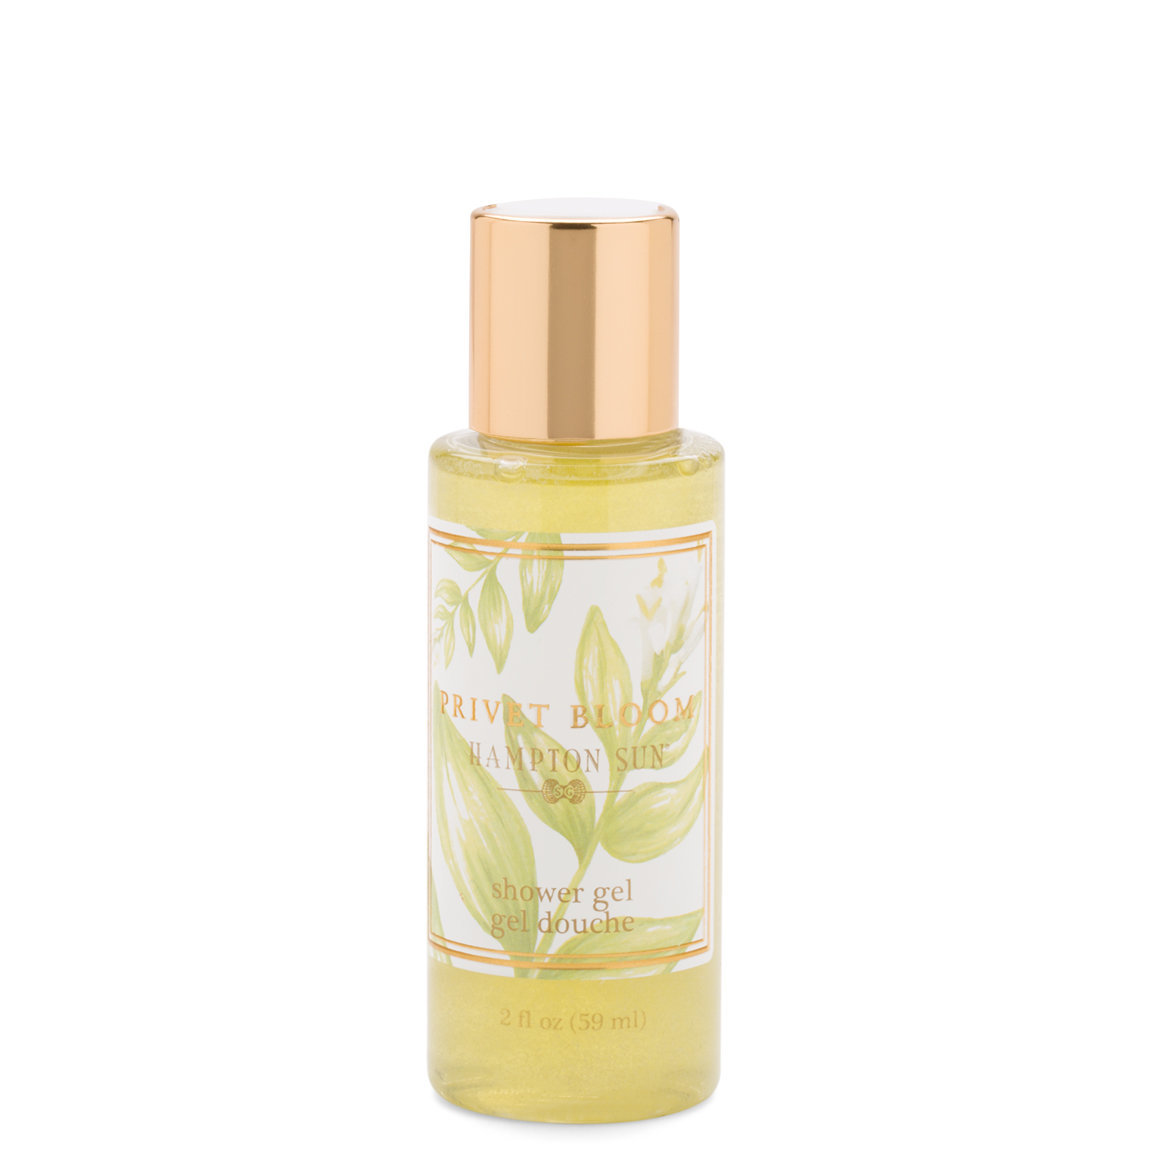 Hampton Sun Privet Bloom Shower Gel 2 oz product swatch.